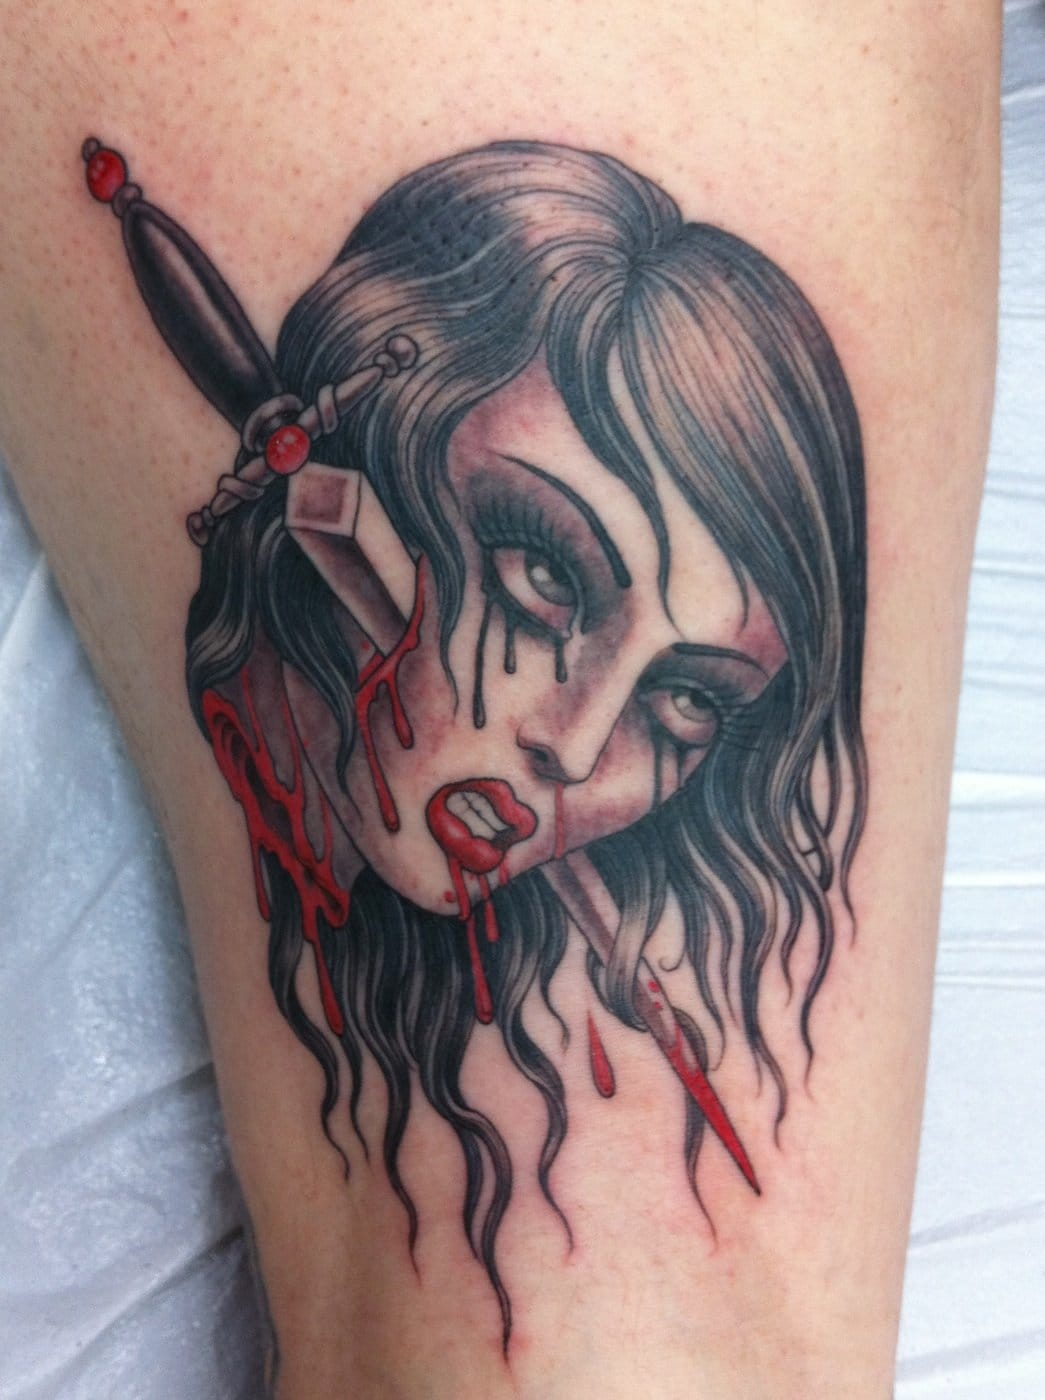 Tattoo by Chris Garver